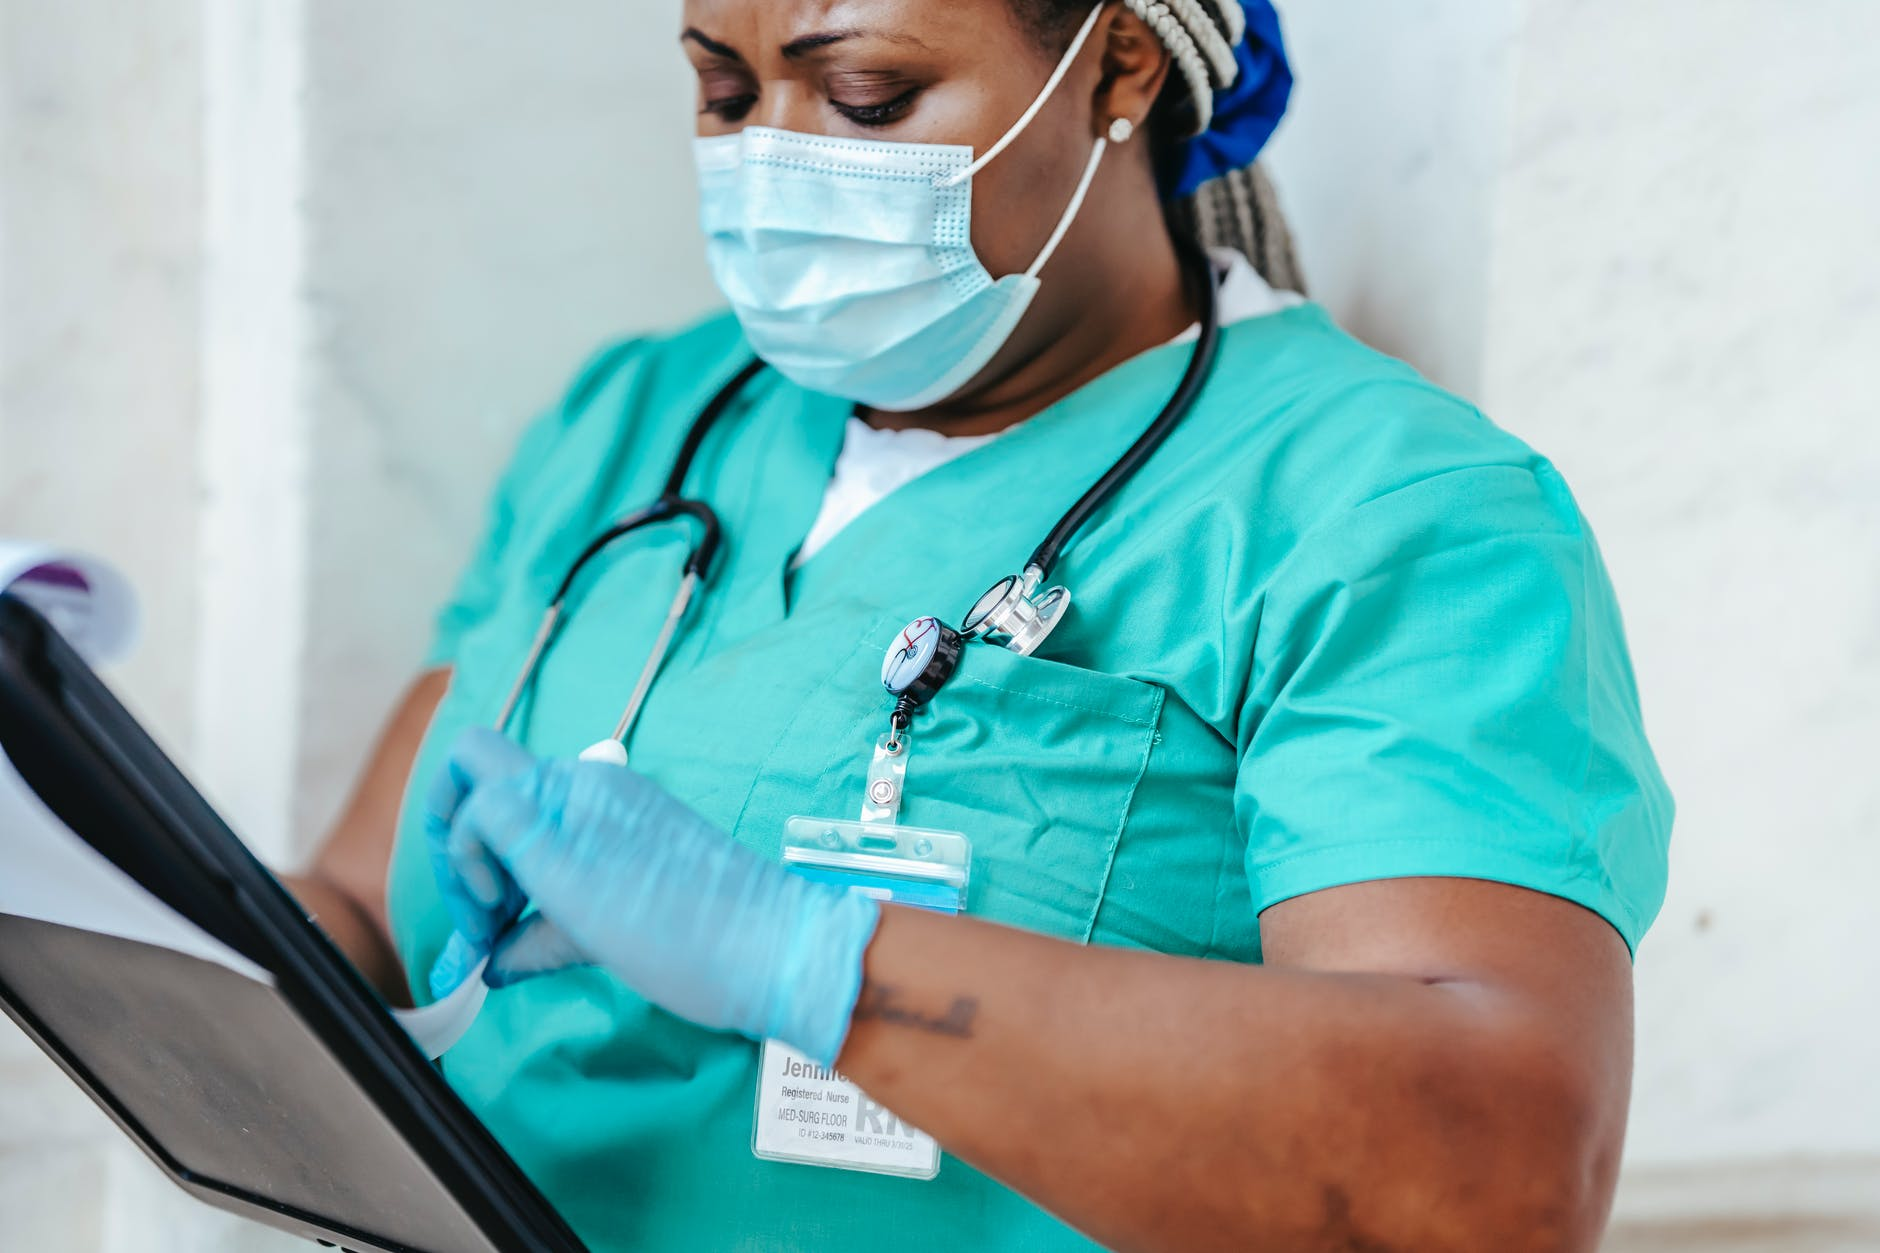 crop nurse in mask and gloves with papers